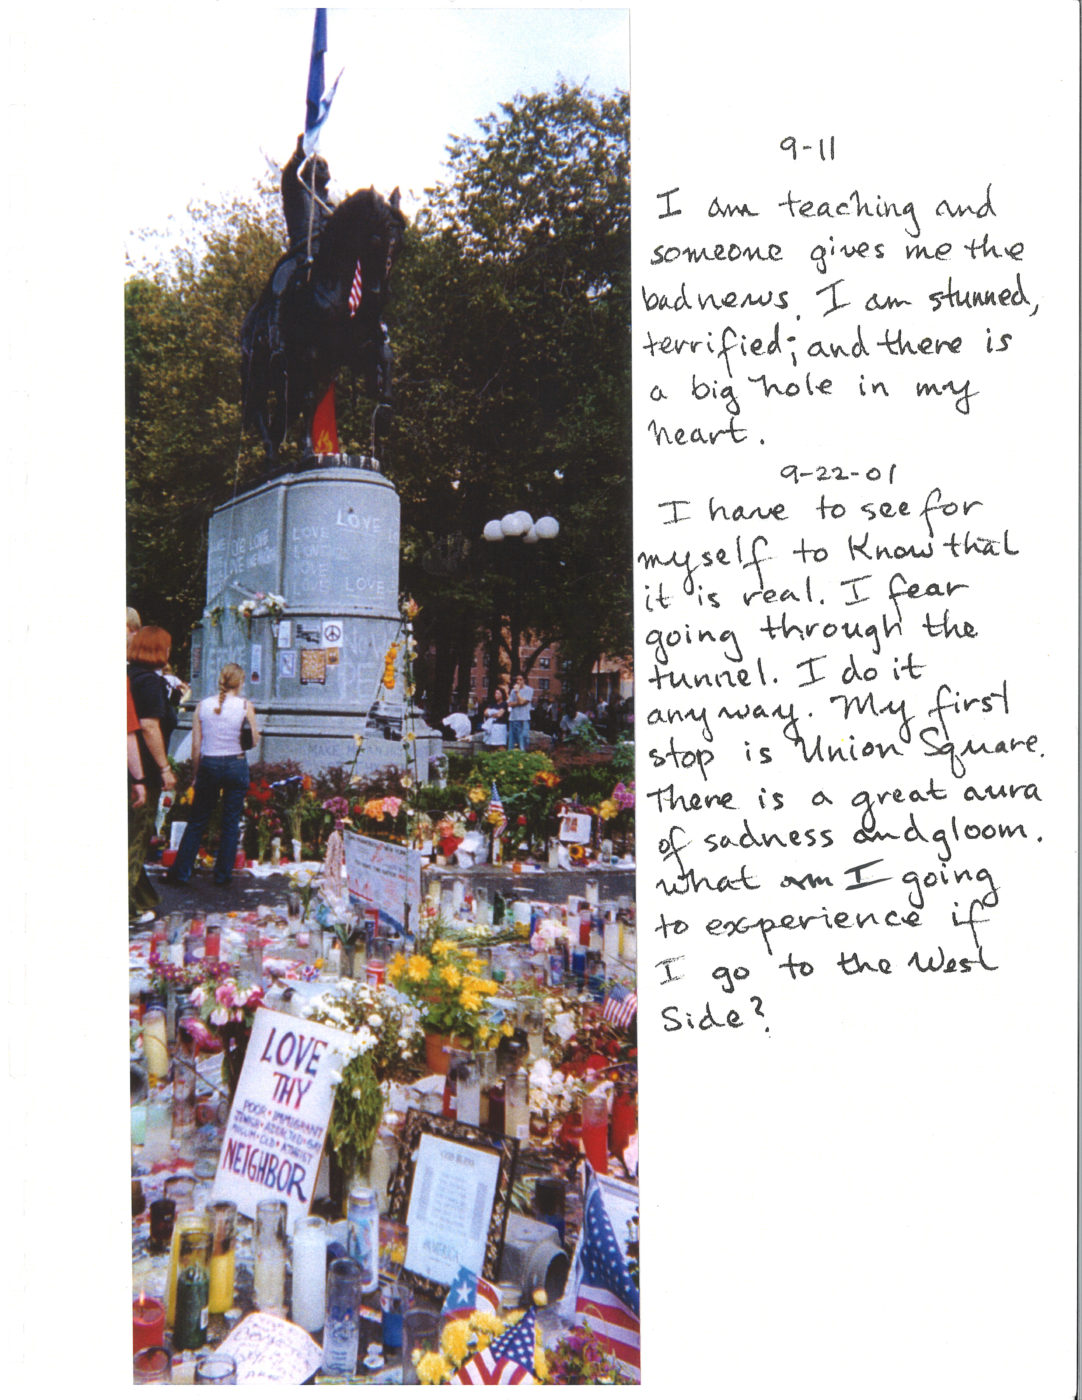 Reflection on 911 with picture of the Washington Square Monument